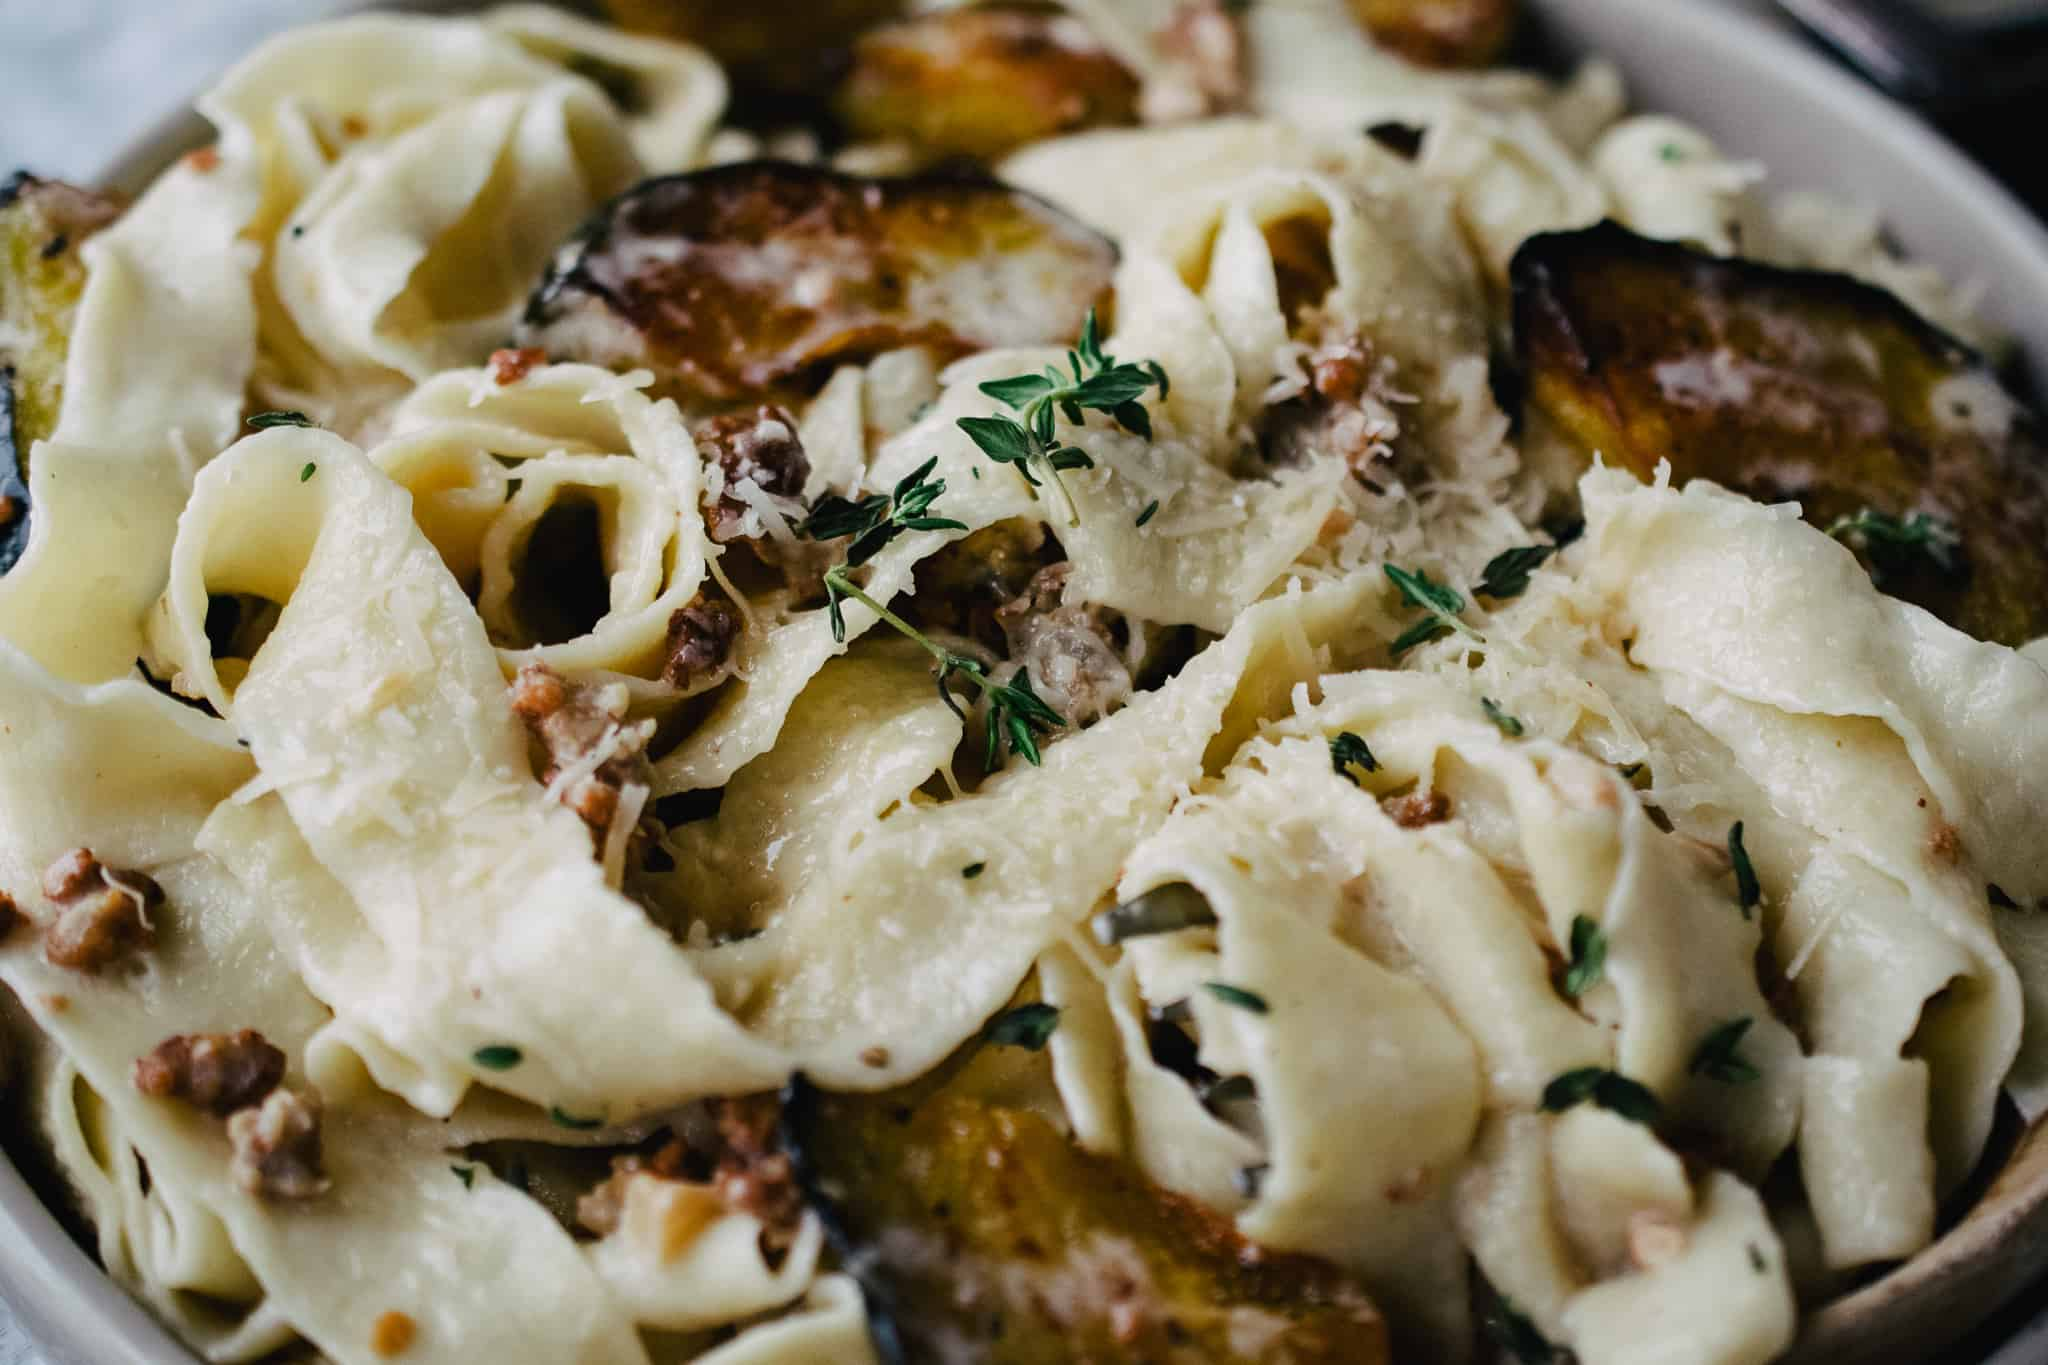 pappardelle pasta tossed with acorn squash wedges in a sherry cream sauce with parmesan cheese and thyme sprigs